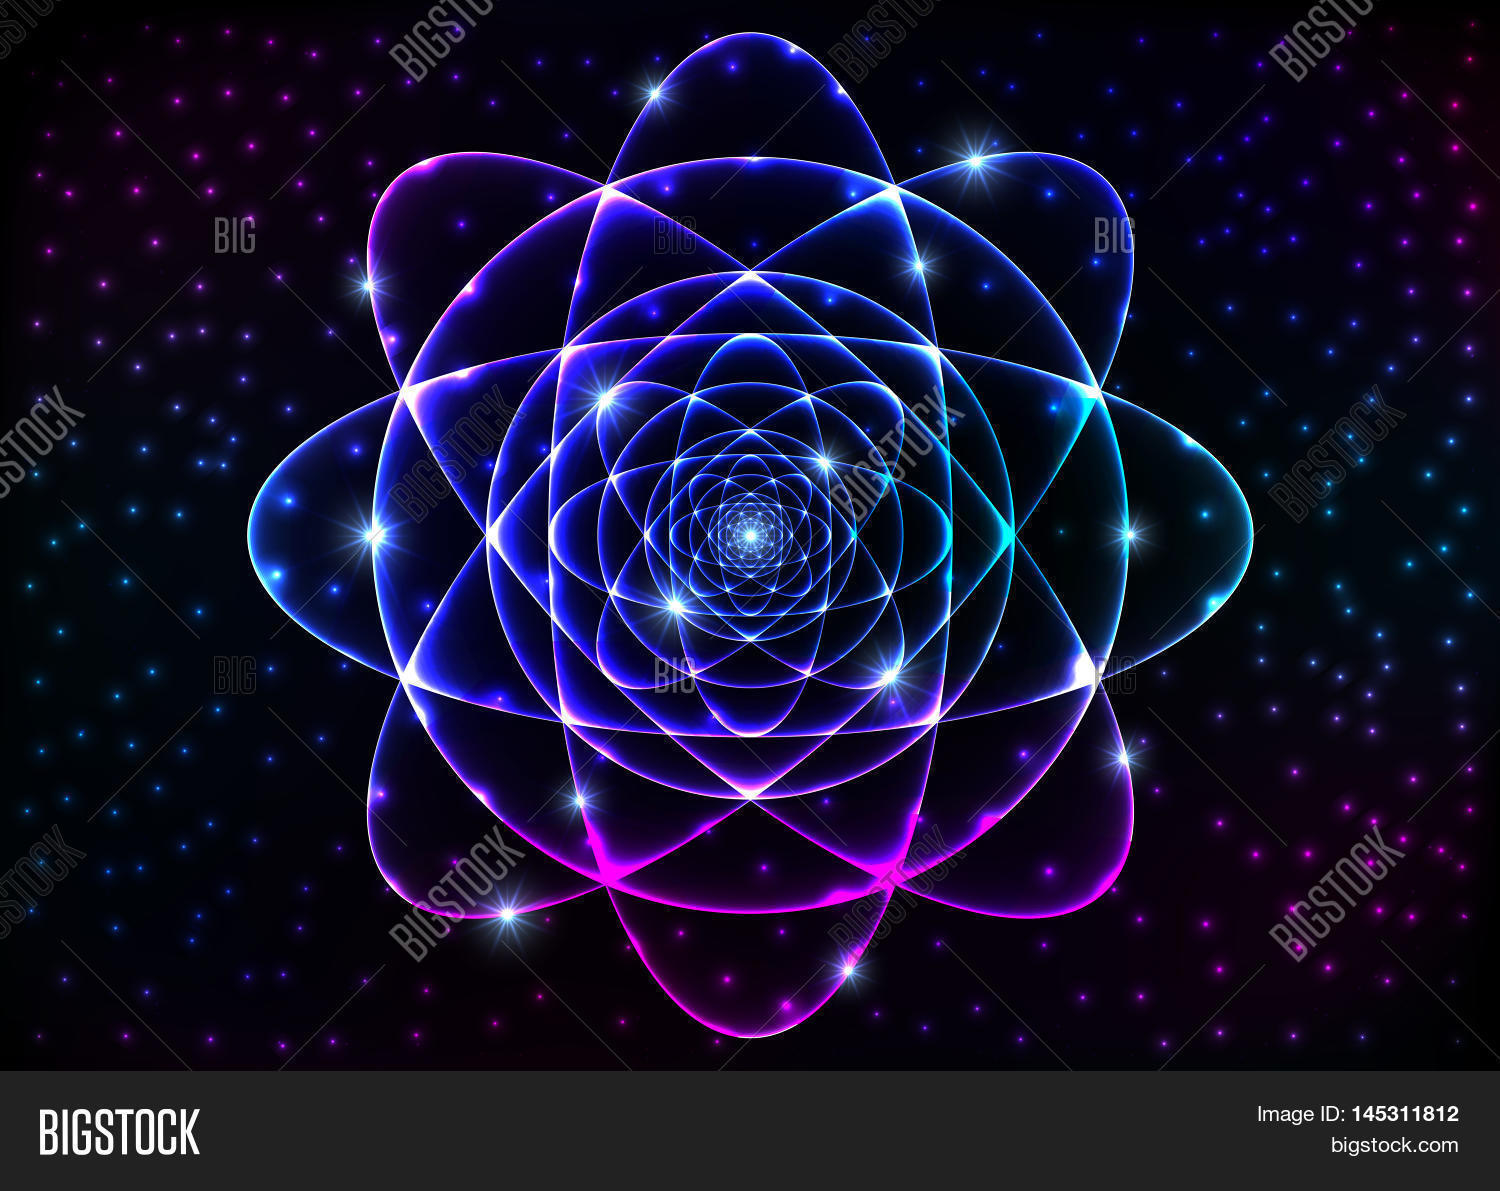 Sacred geometry symbol mandala image photo bigstock sacred geometry symbol mandala mystery element background for space universe big bang alchemy religion buycottarizona